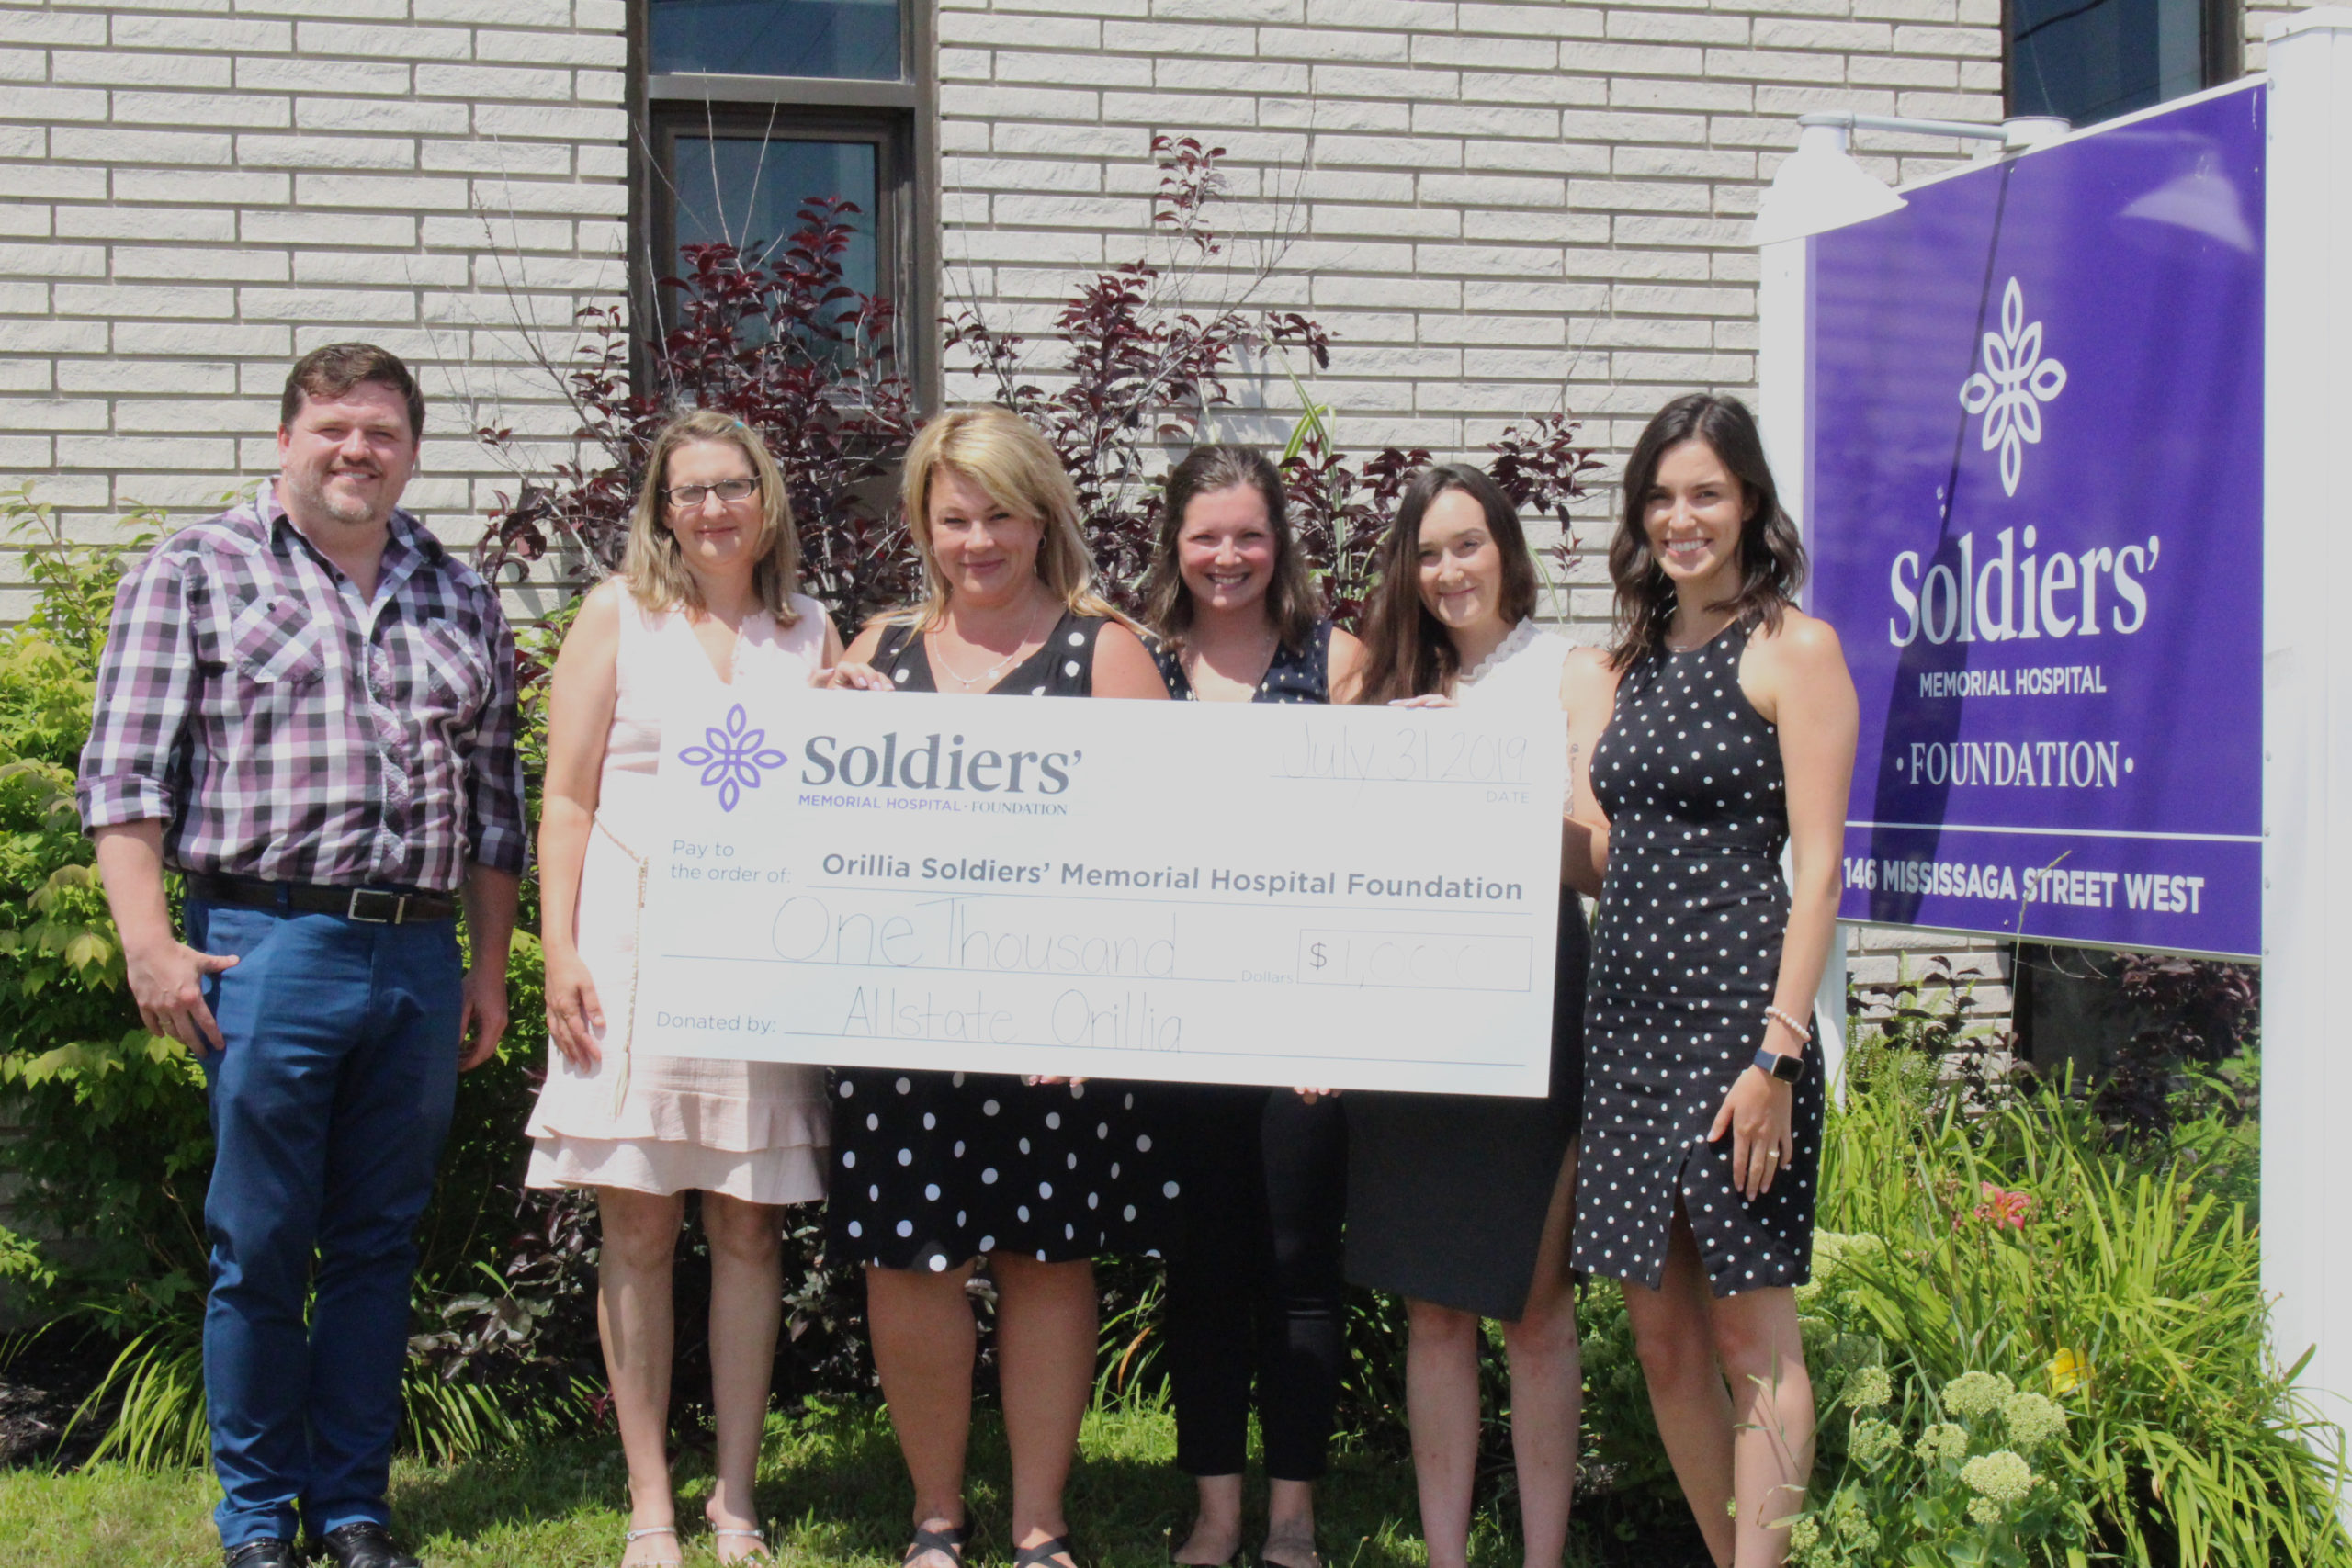 The Allstate Insurance Orillia team presents a cheque for $1,000 to the Orillia Soldiers' Memorial Hospital Foundation's Executive Director, Mark Riczu (far left) and Foundation Development Officer, Marina Genua (far right). The Allstate team from left to right is Heidi Landsman, Tammy Revie, Amanda Martyniuk, and Jacqueline Dejong.